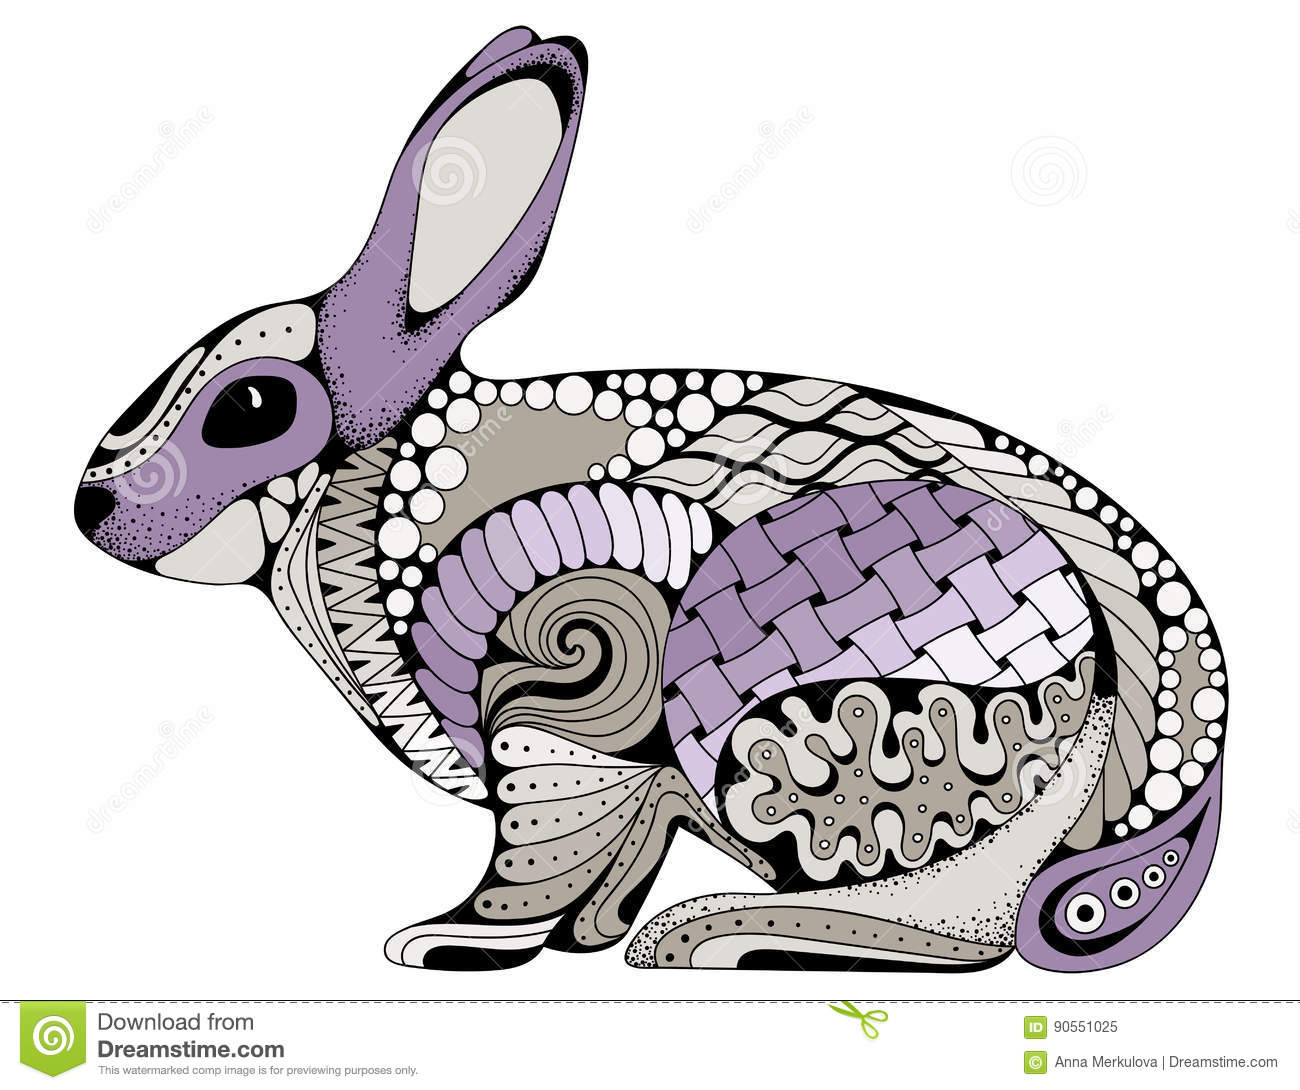 Rabbit Bunny Coloring Book For Adults Vector Illustration. Stock ...